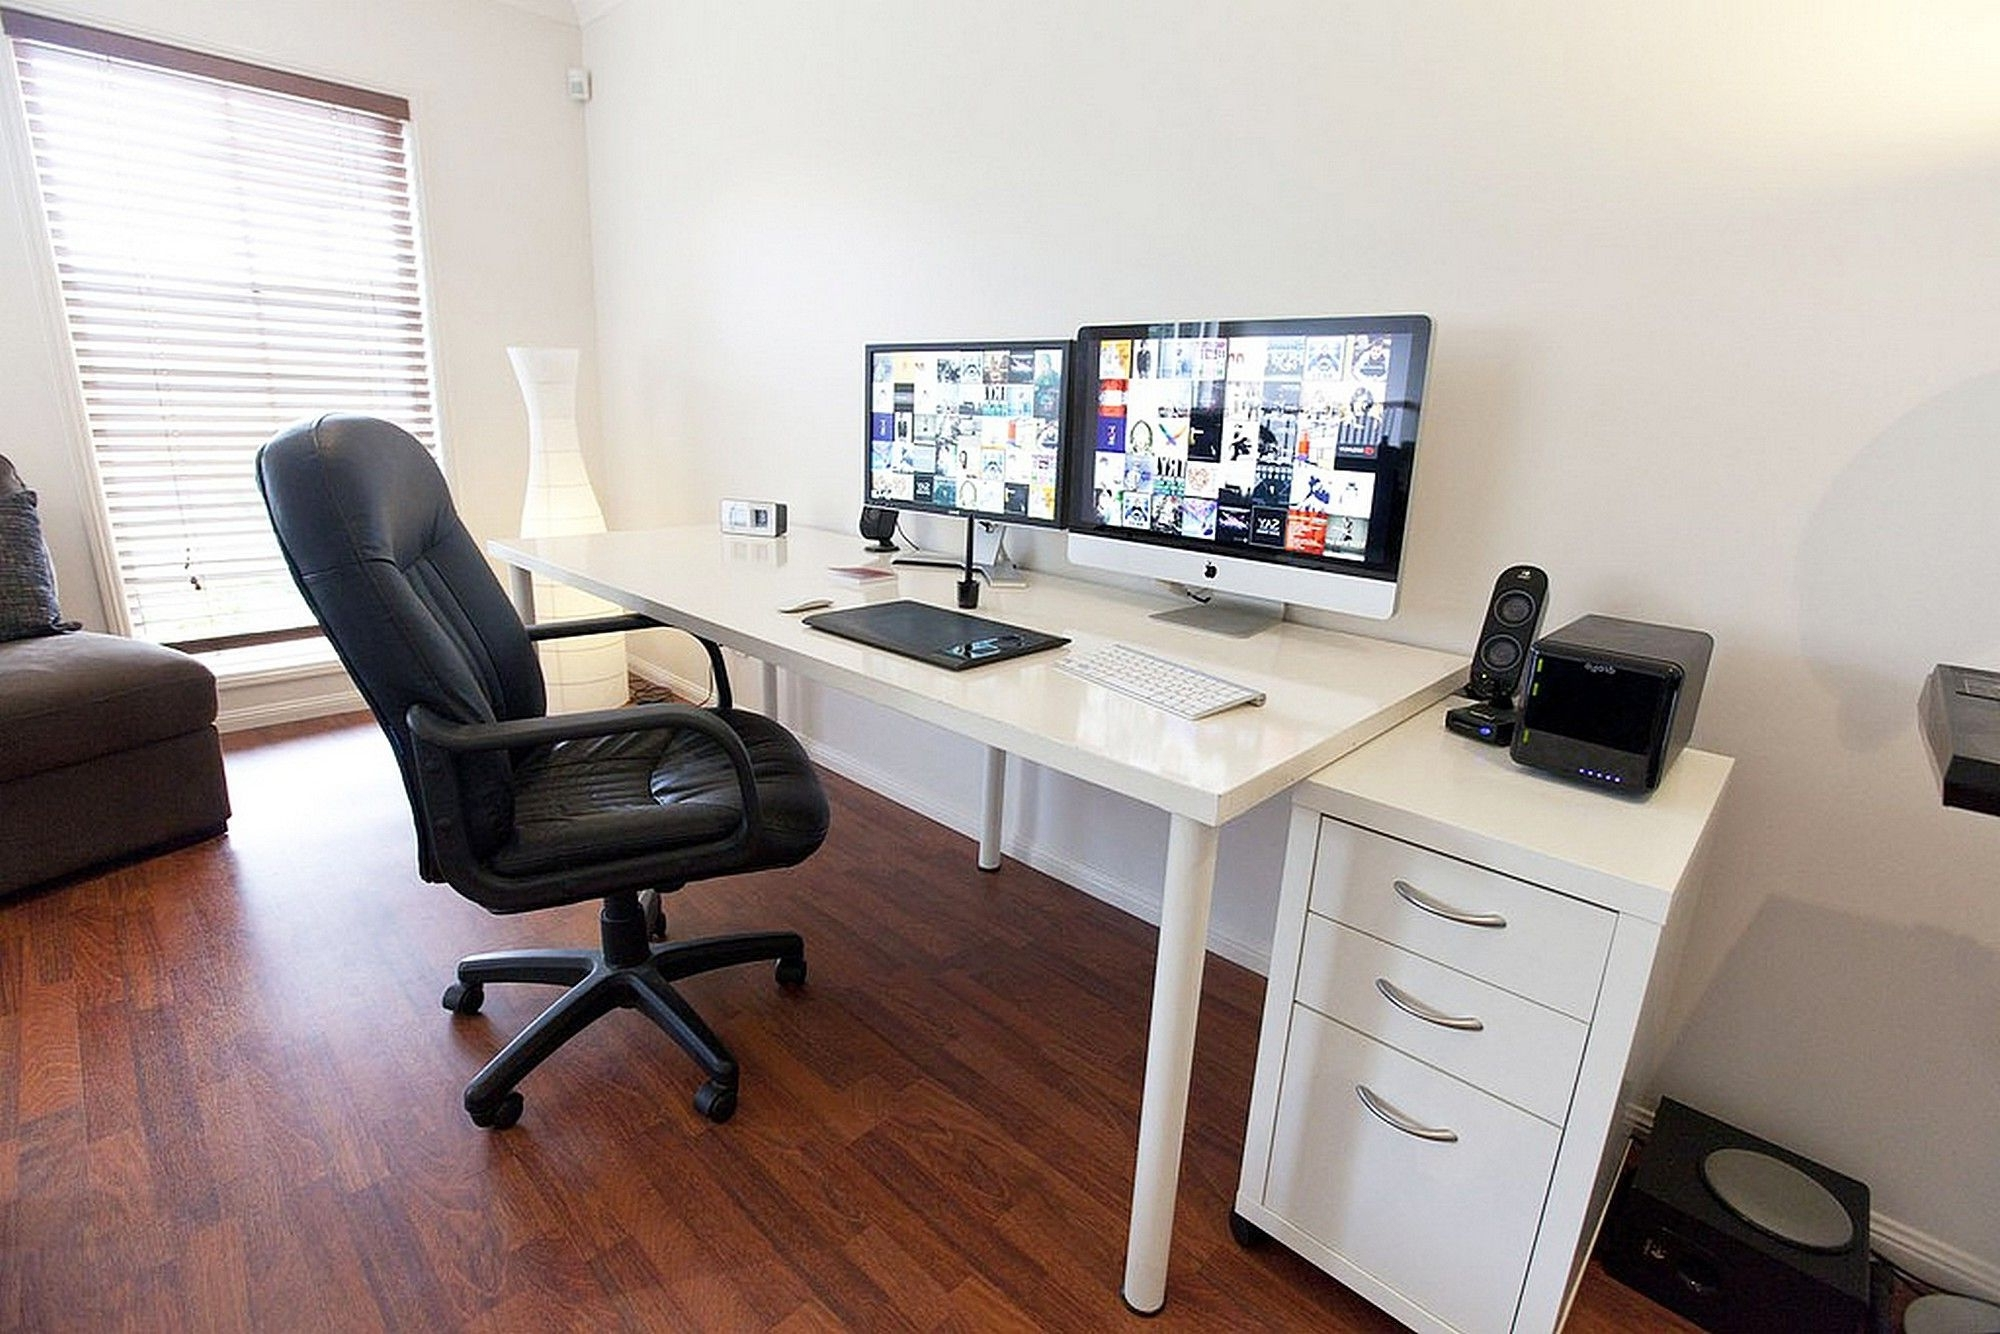 Ikea Linnmon Adils Computer Desk Setup With Drawer For Dual With 2018 Computer Desks For Two Monitors (Gallery 18 of 20)